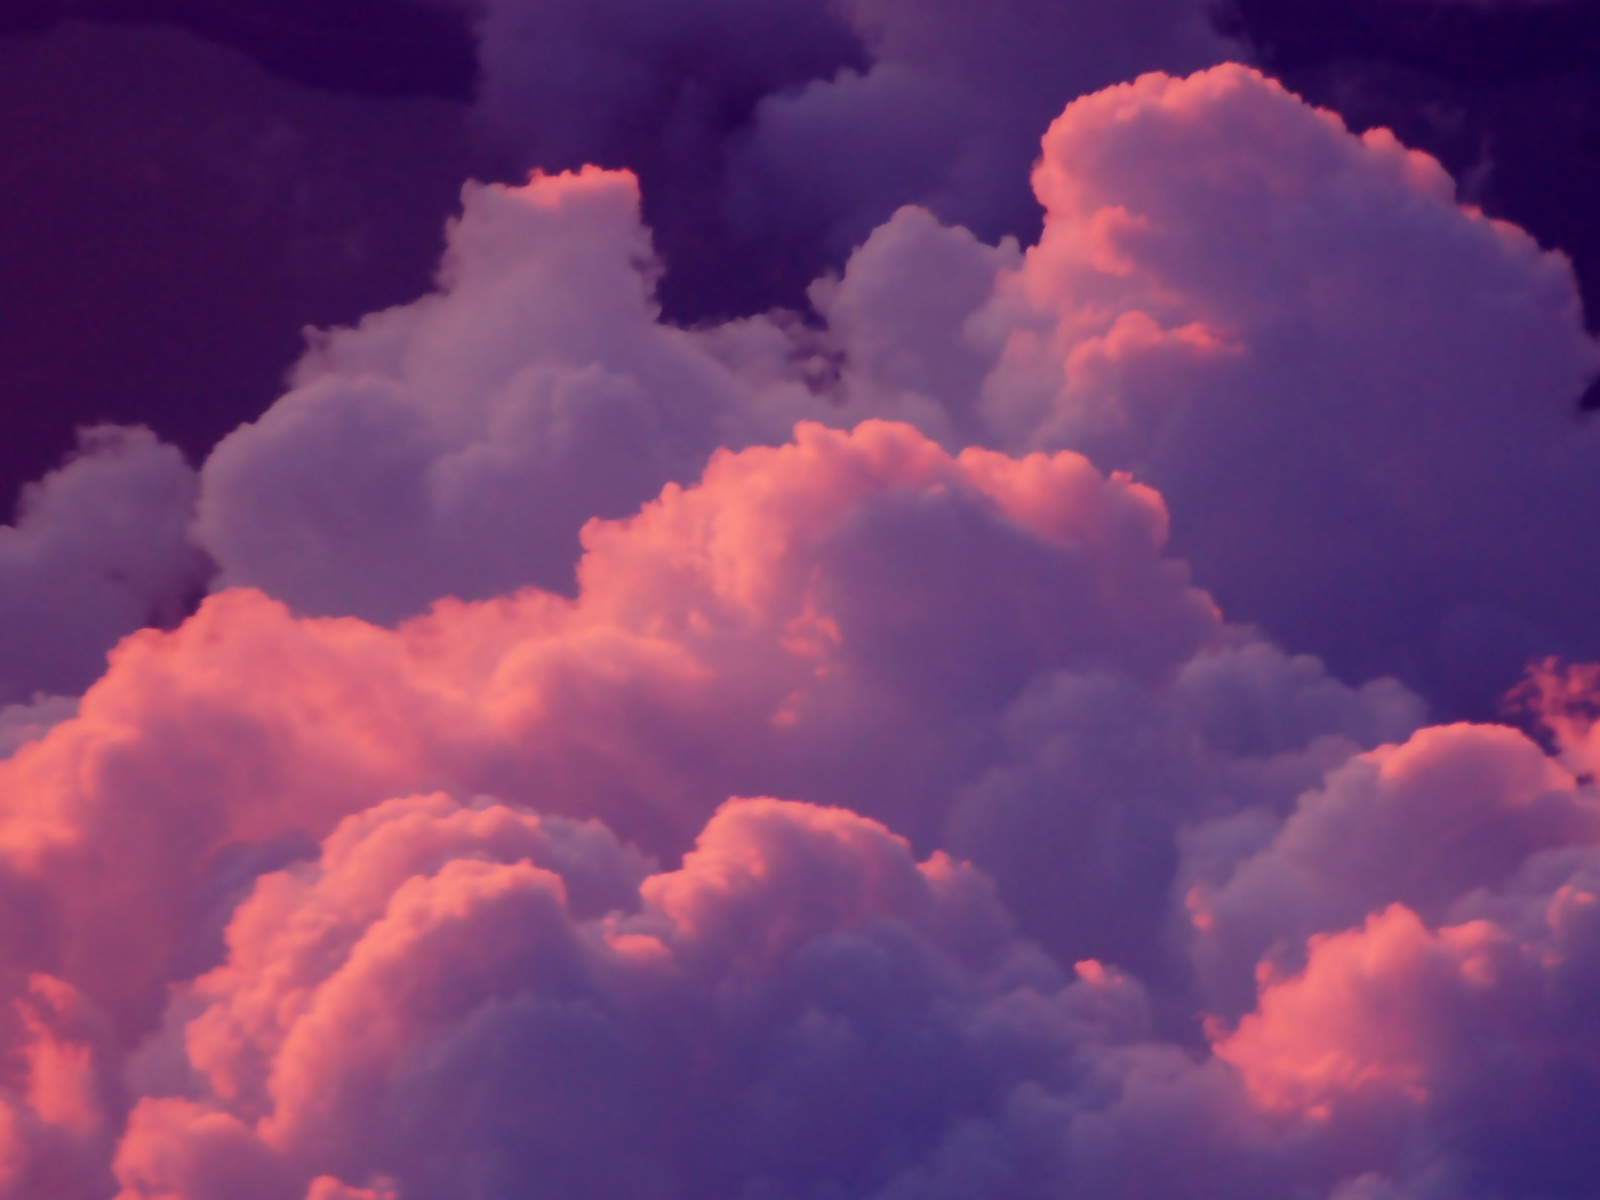 1600x1200 pink clouds desktop pc and mac wallpaper